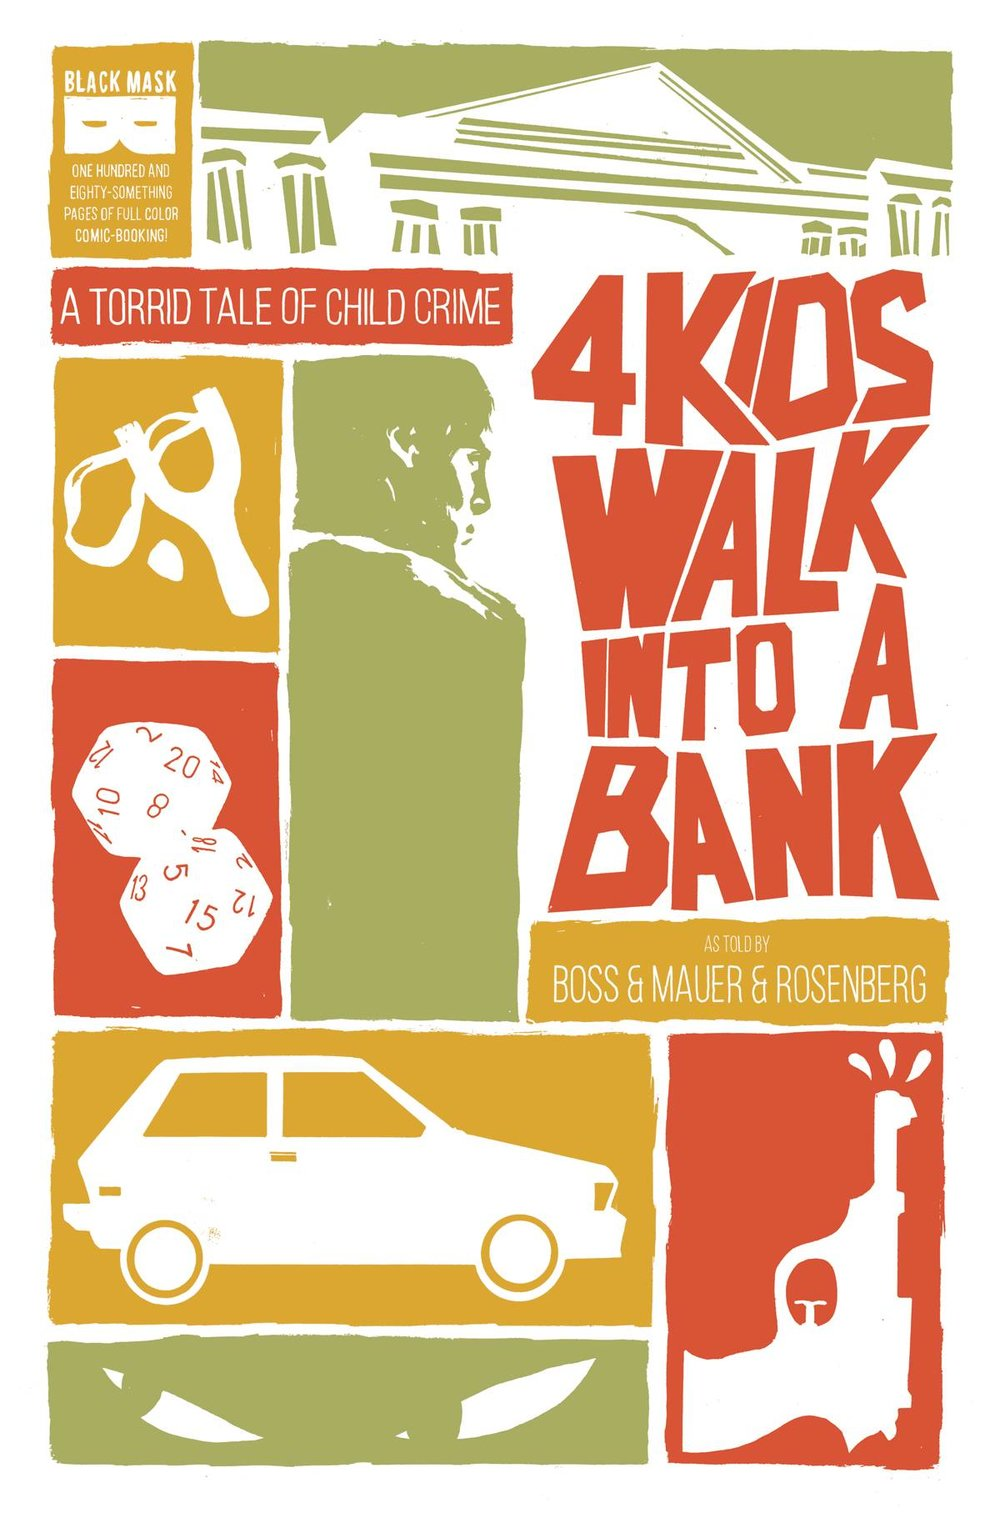 4 Kids Walk Into A Bank by Matthew Rosenberg & Tyler Boss